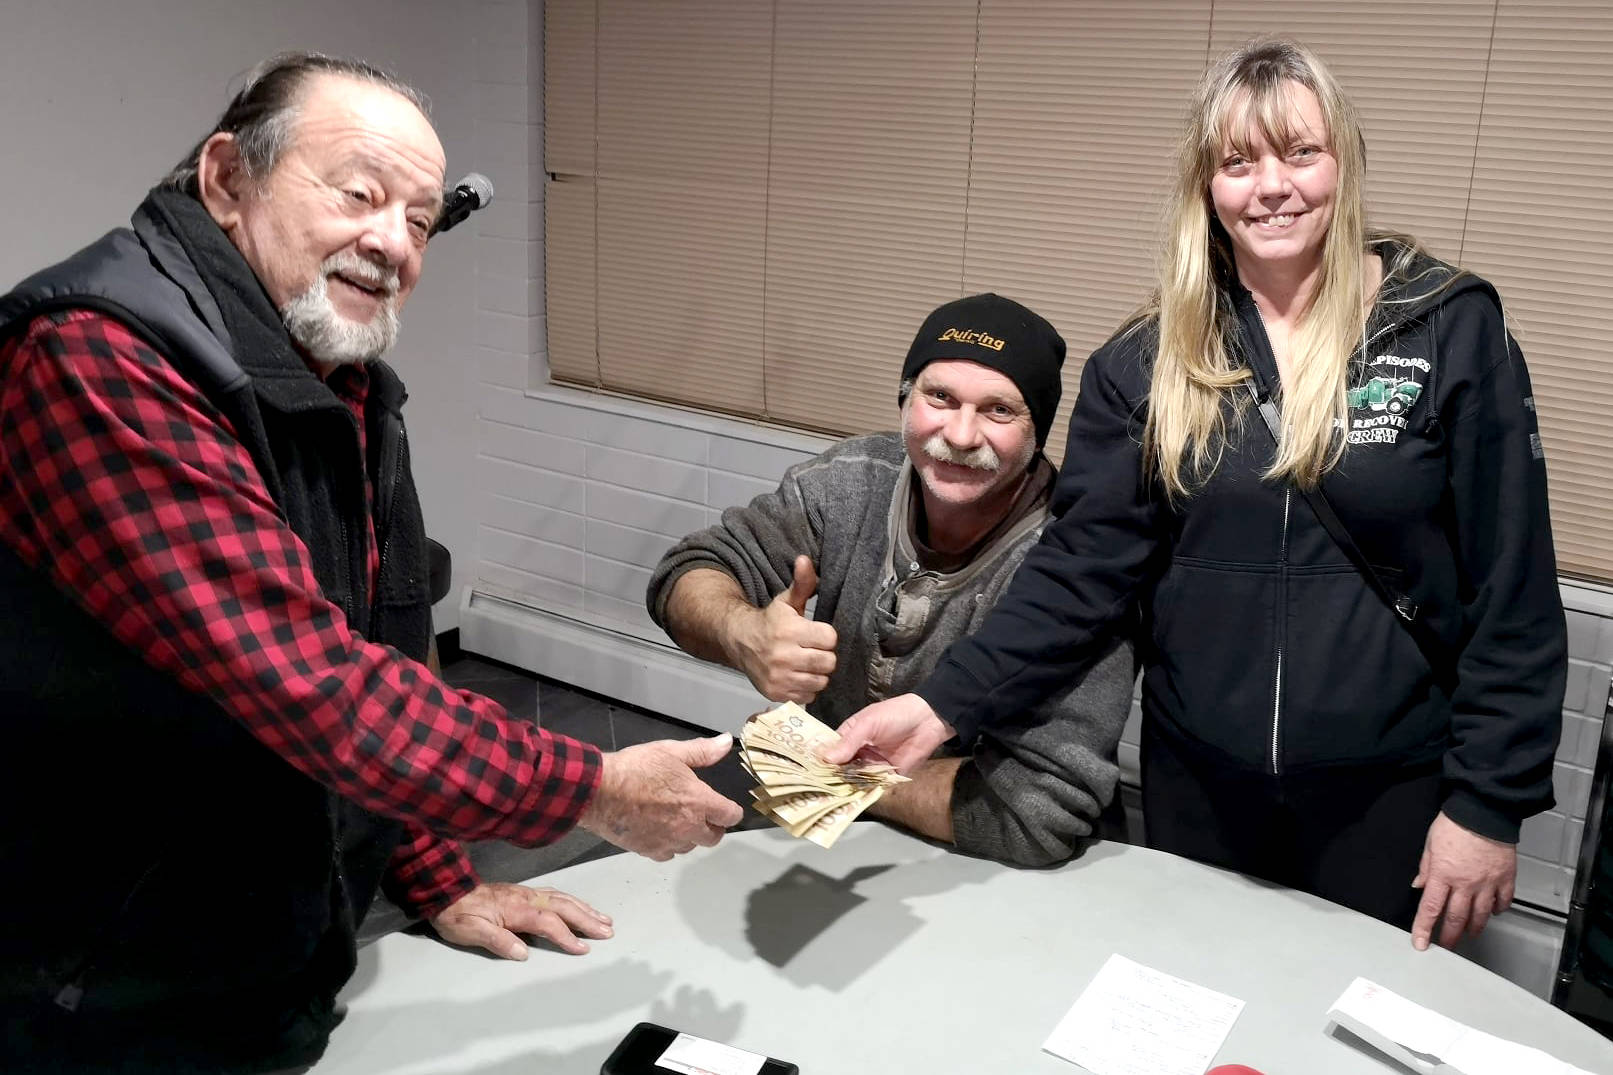 Gary King accepting a two thousand dollar donation from Al and Nancy Quiring of Quiring Towing Aldergrove. (Special to the Aldergrove Star)